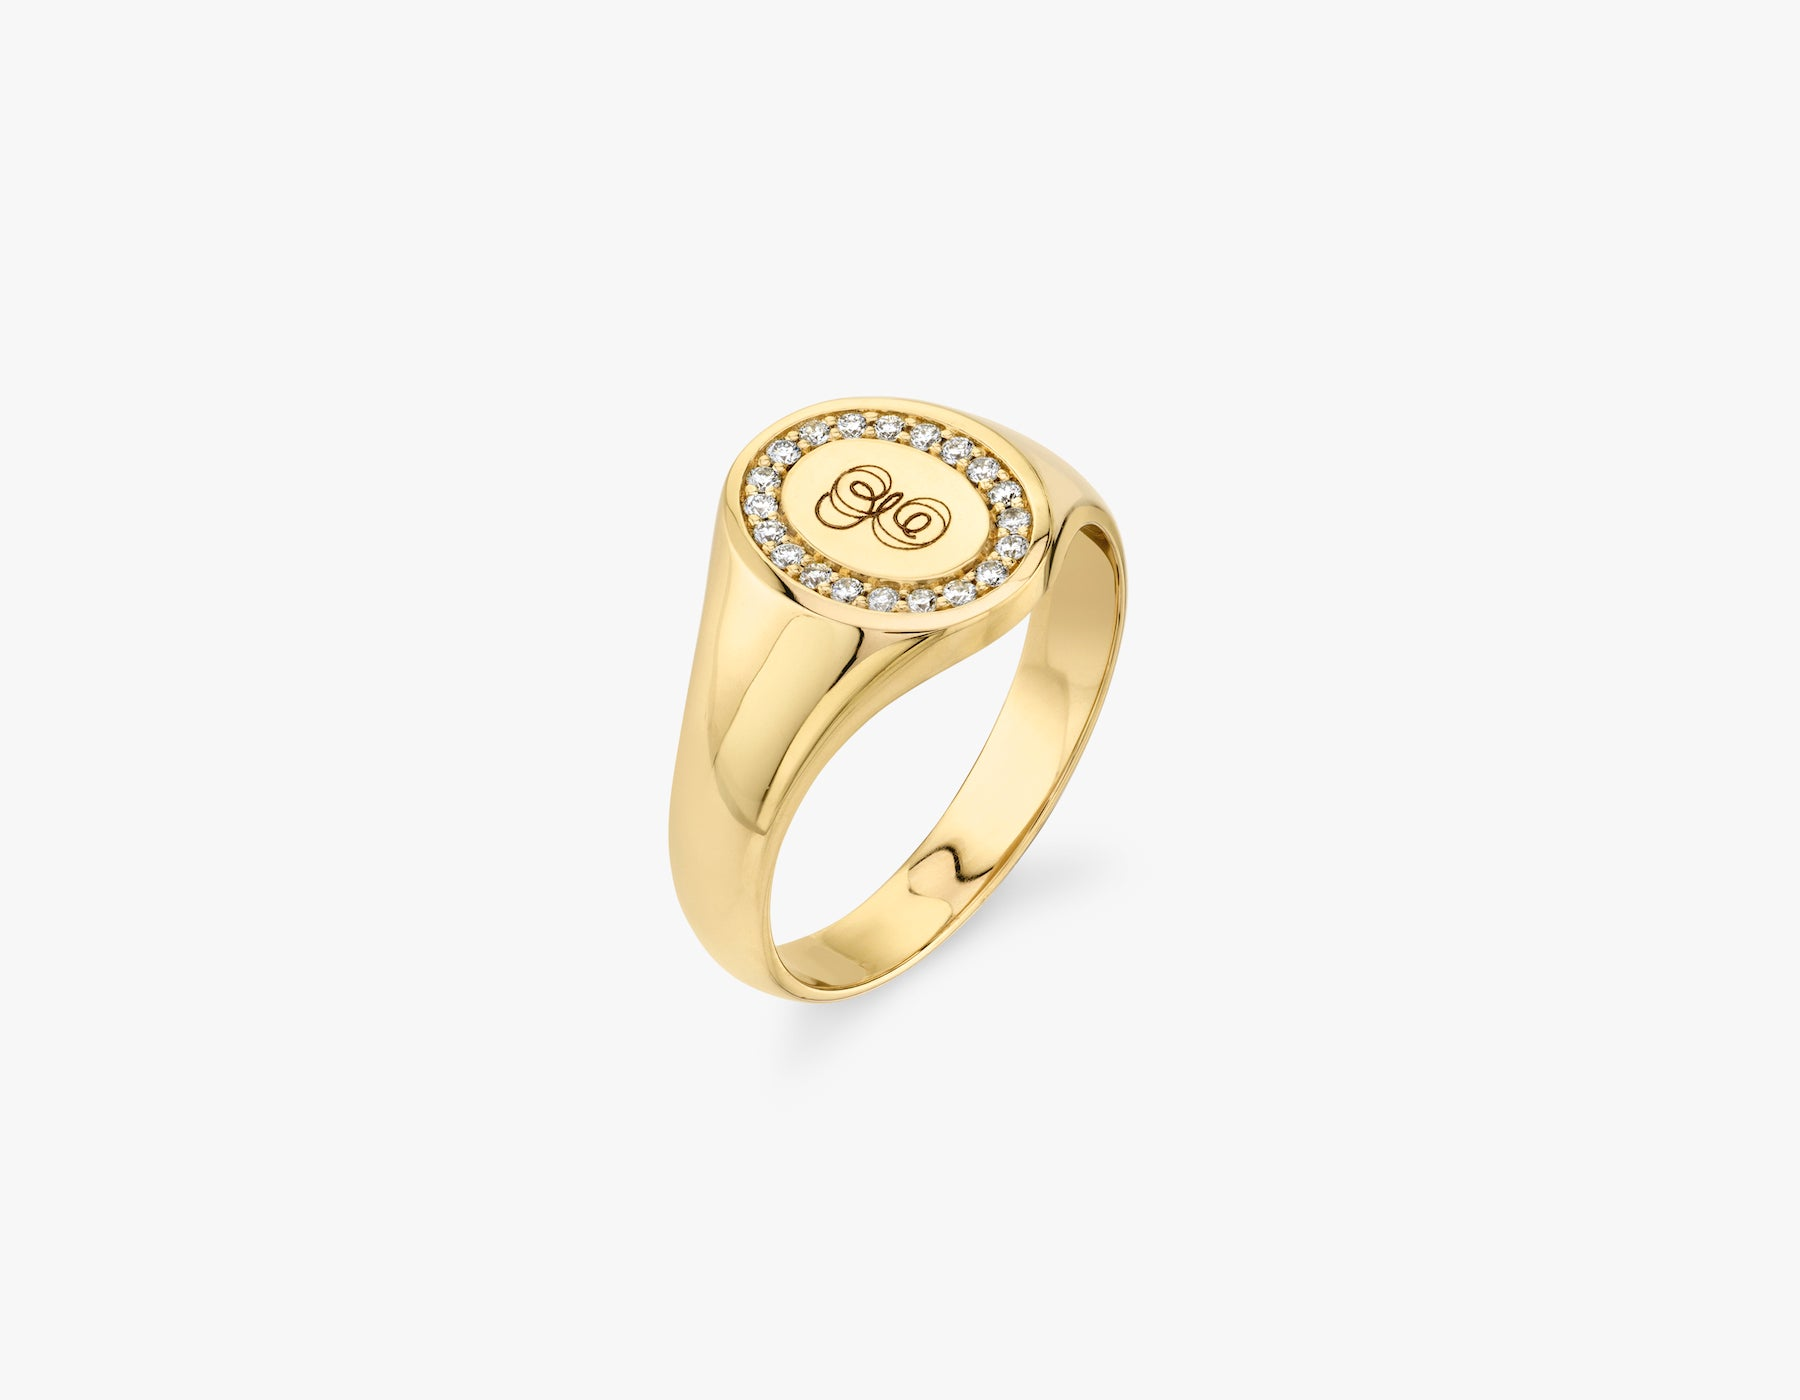 Vrai 14k solid gold classic minimalist engraved Pave Signet Ring, 14K Yellow Gold